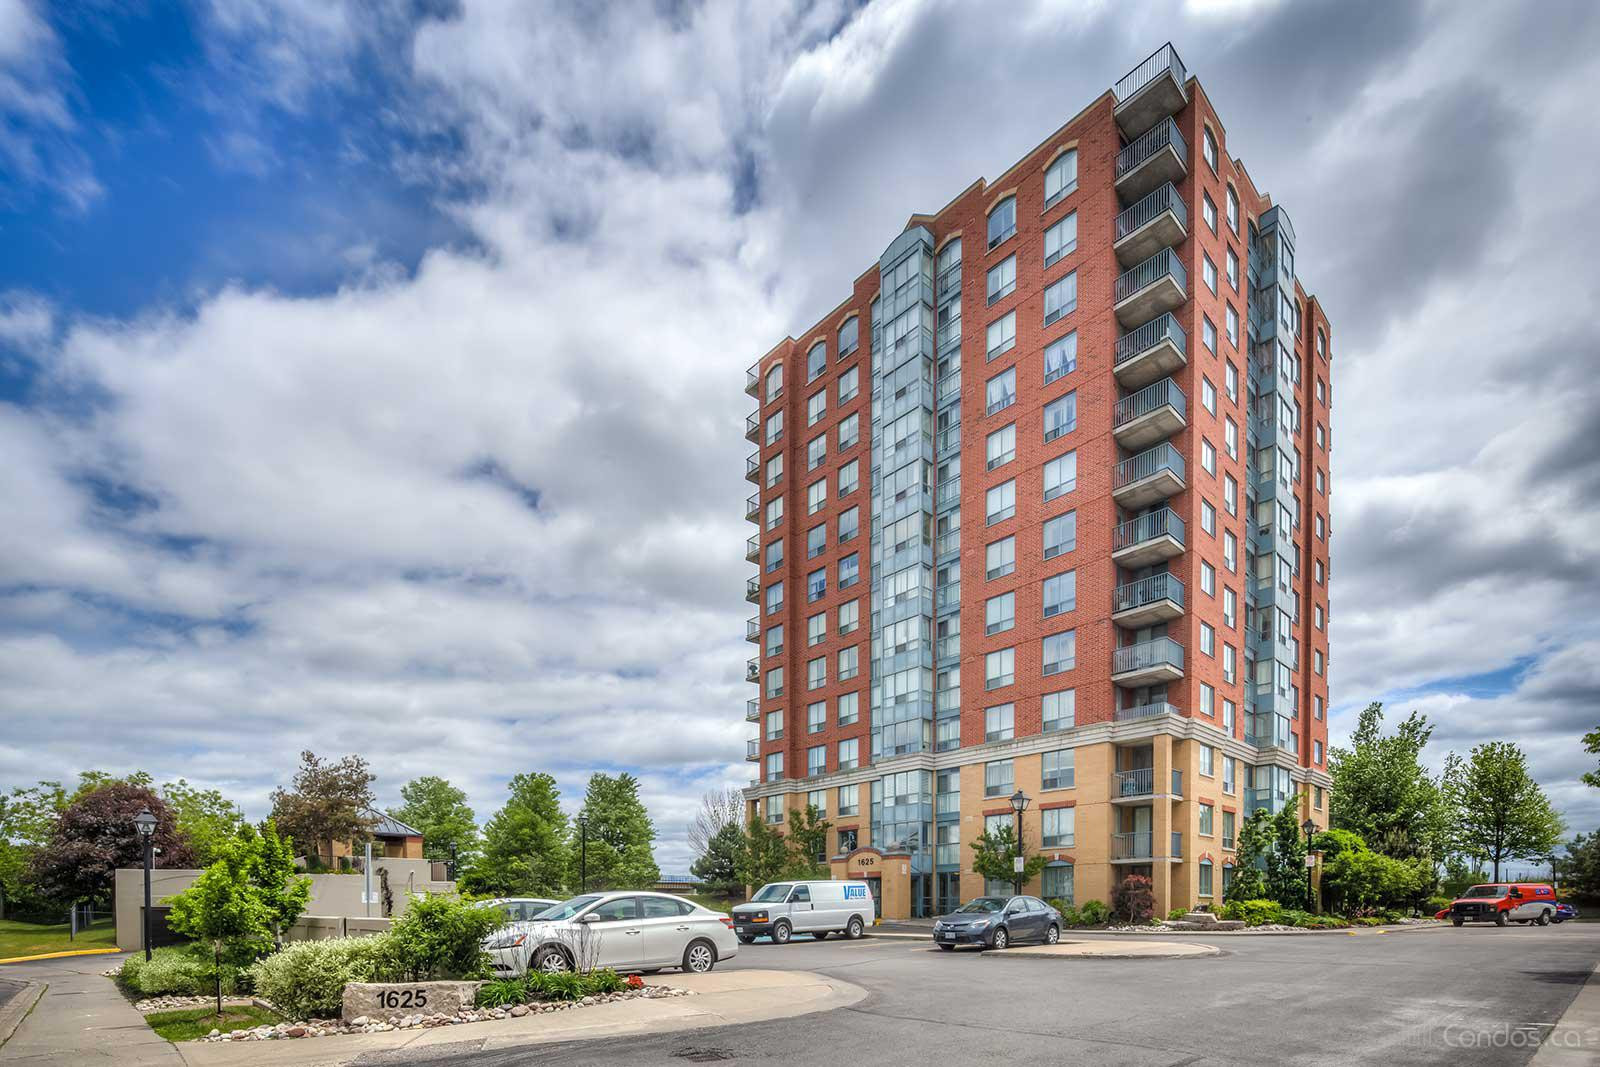 The Brockstone at 1625 Pickering Pkwy, Pickering 0